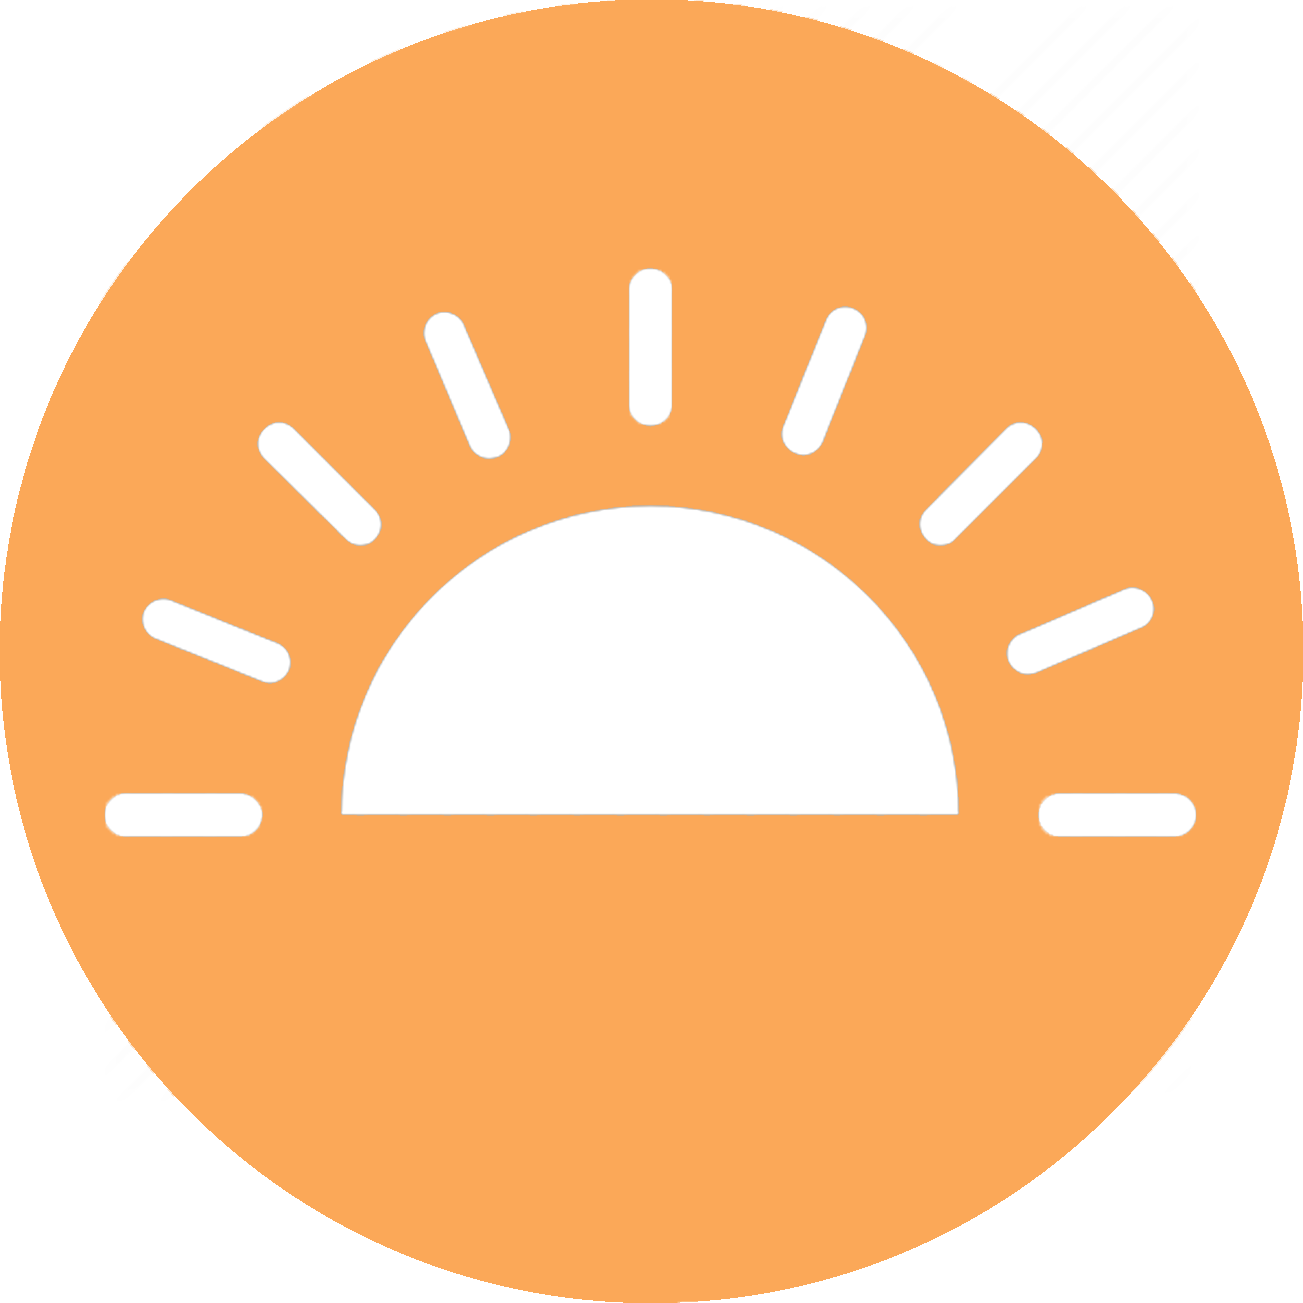 Lawn tips in dry. Evaporation clipart sunny